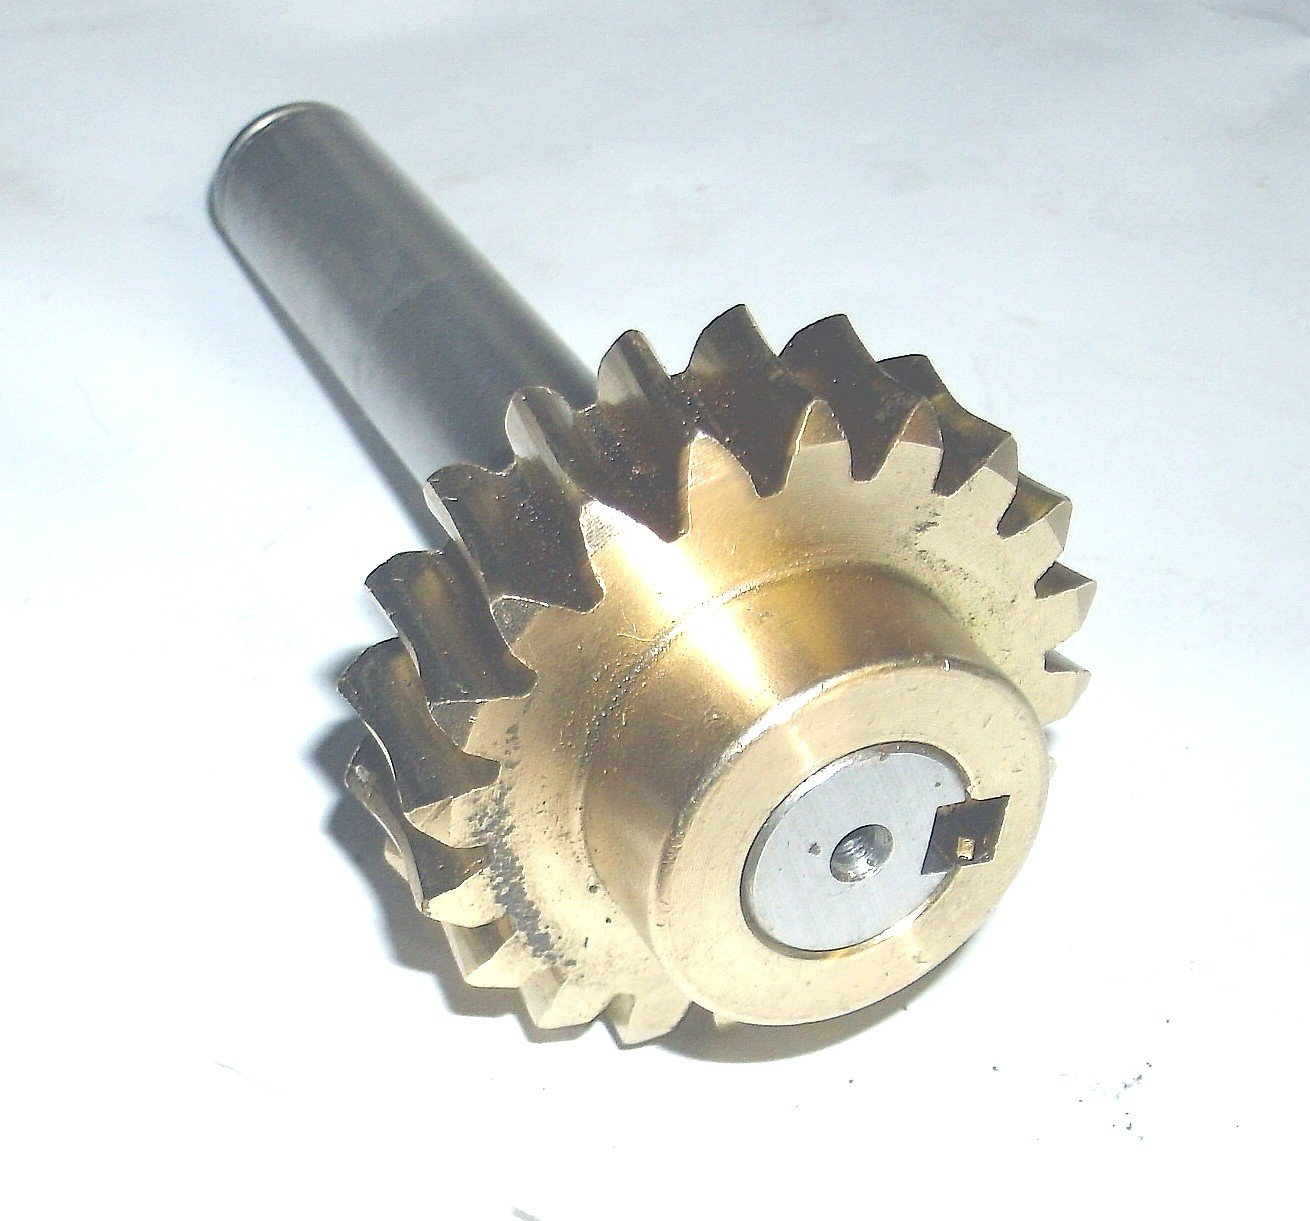 BRONZE GEAR FOR 4 X 6 METAL CUTTING BAND SAW by Accura